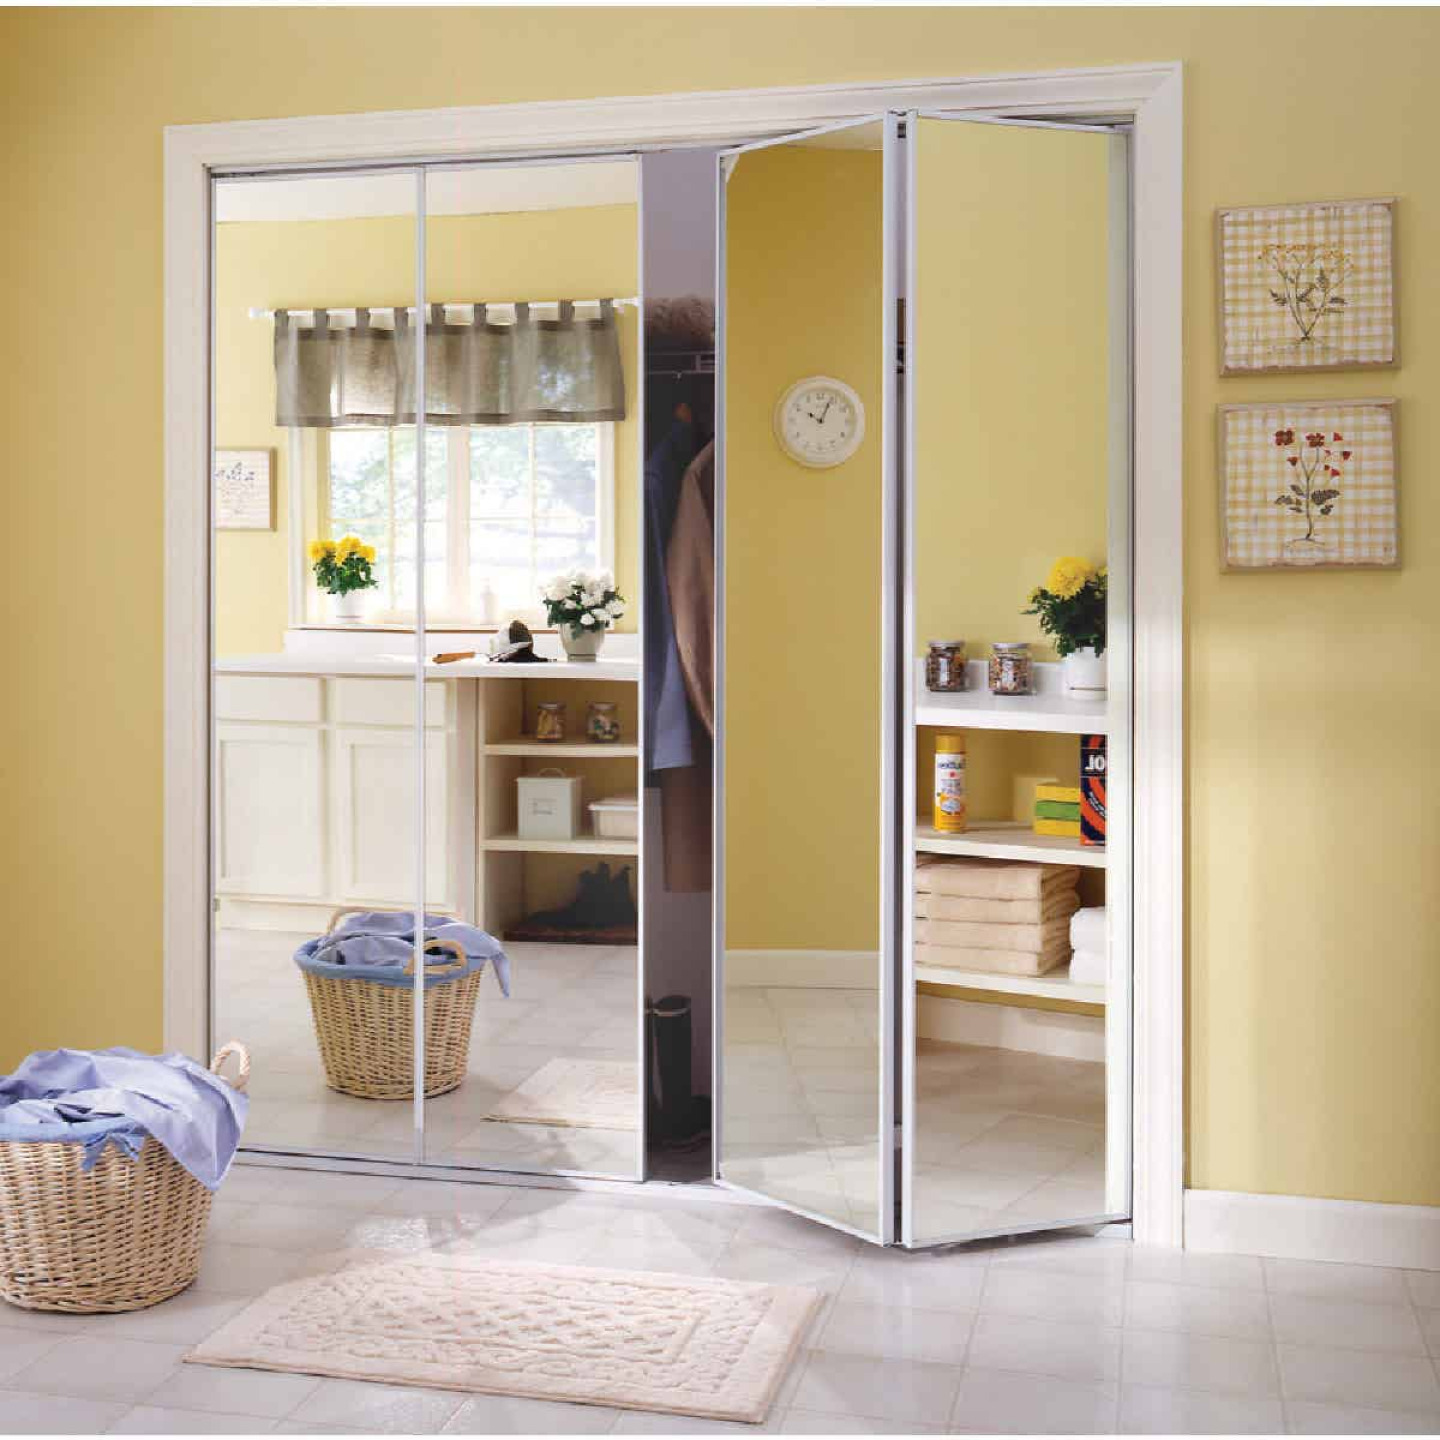 Erias Series 4400 24 In. W. x 80-1/2 In. H. Steel Frame Mirrored White Bifold Door Image 1